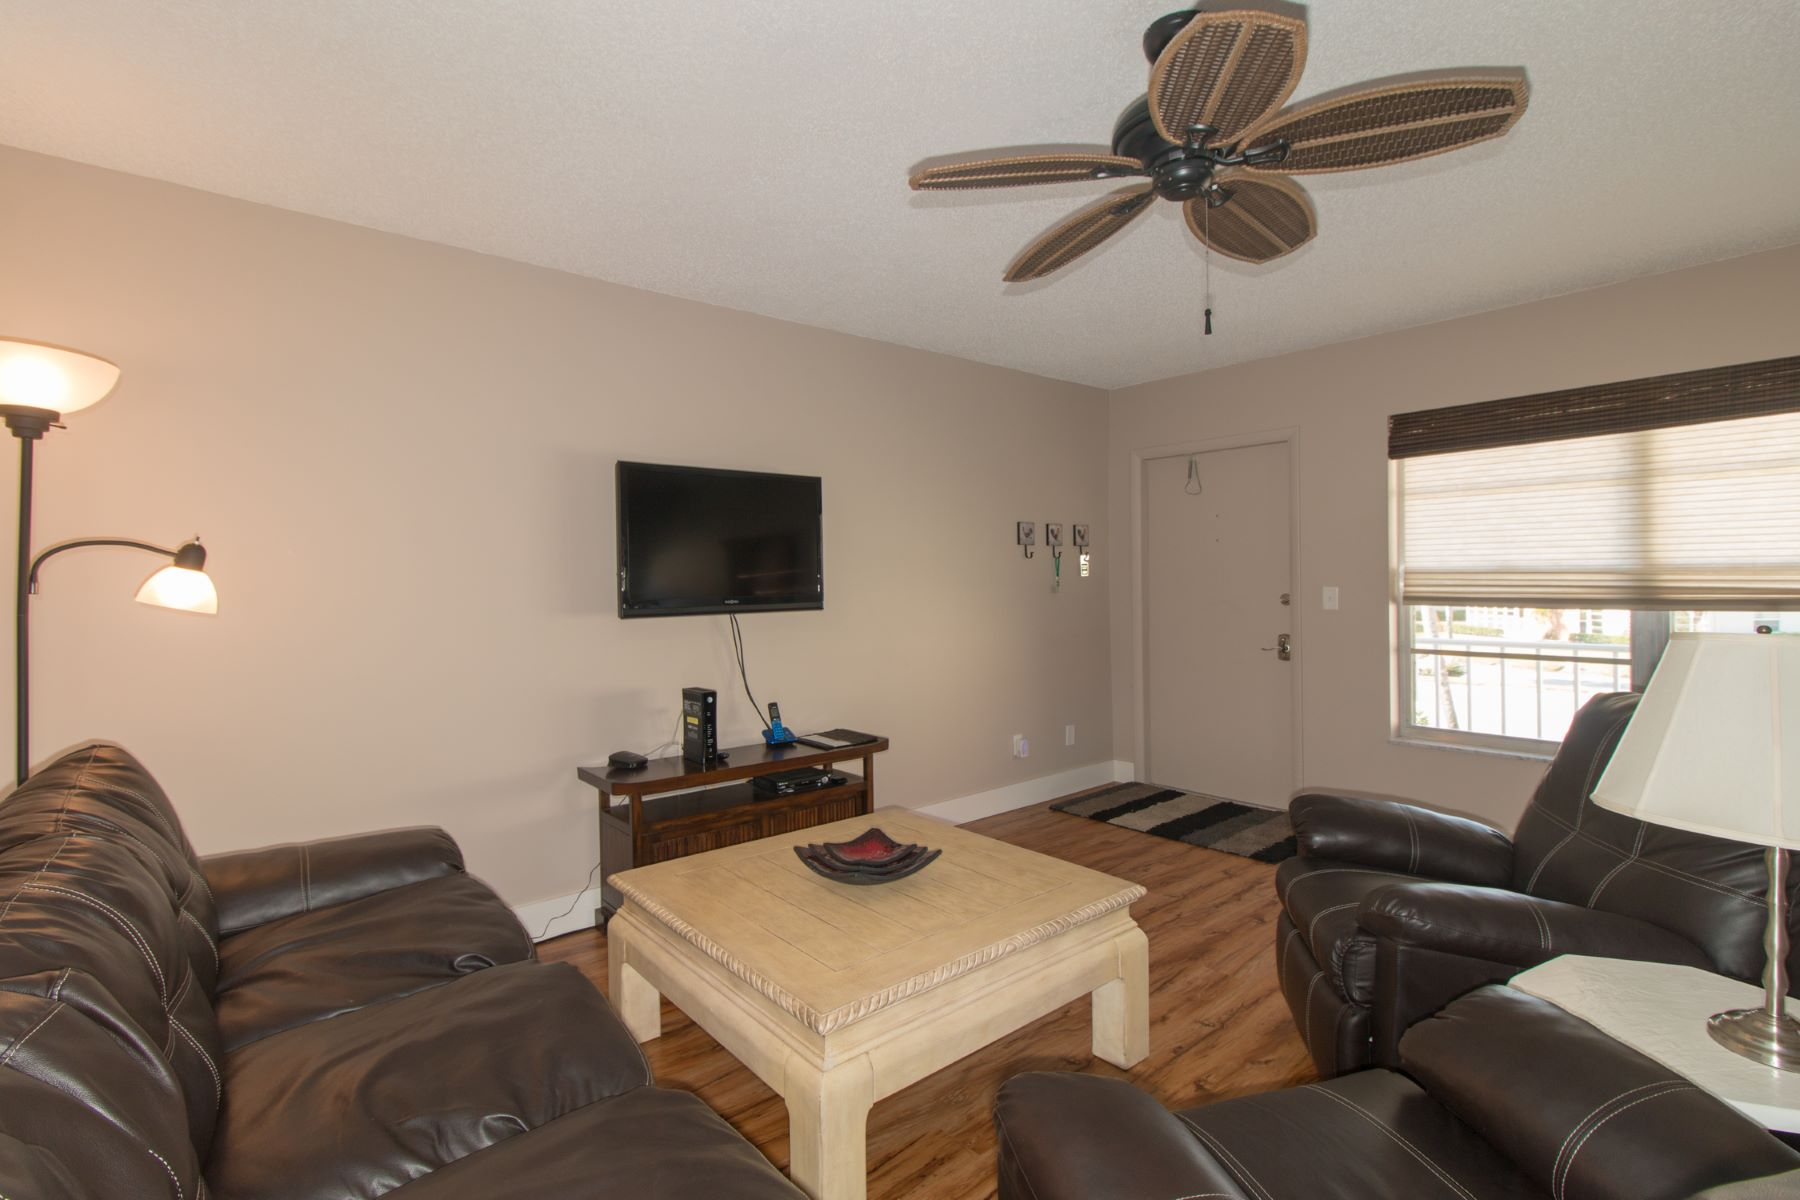 Additional photo for property listing at Two Bedroom Remodeled Home with Preserve View 52 Woodland Drive 202 Vero Beach, Florida 32962 United States